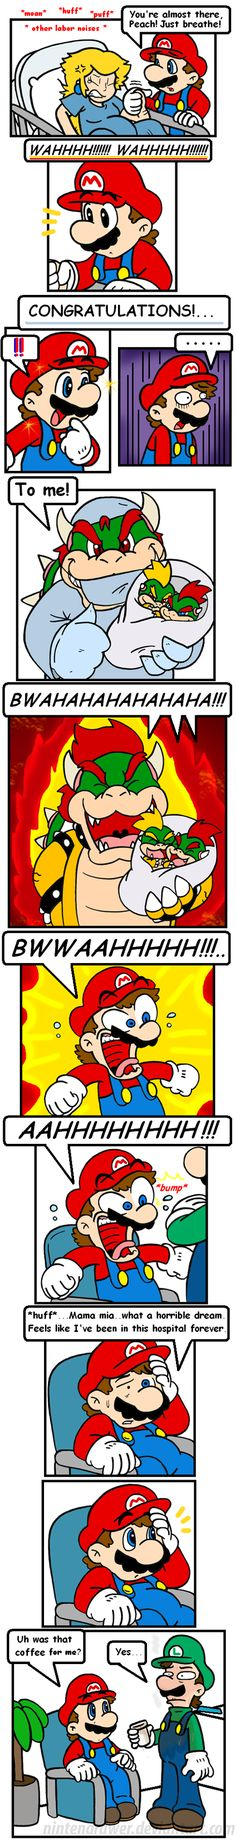 cake in the oven 8 by Nintendrawer How would Peach ever agree to become pregnant with bowser.... I mean really